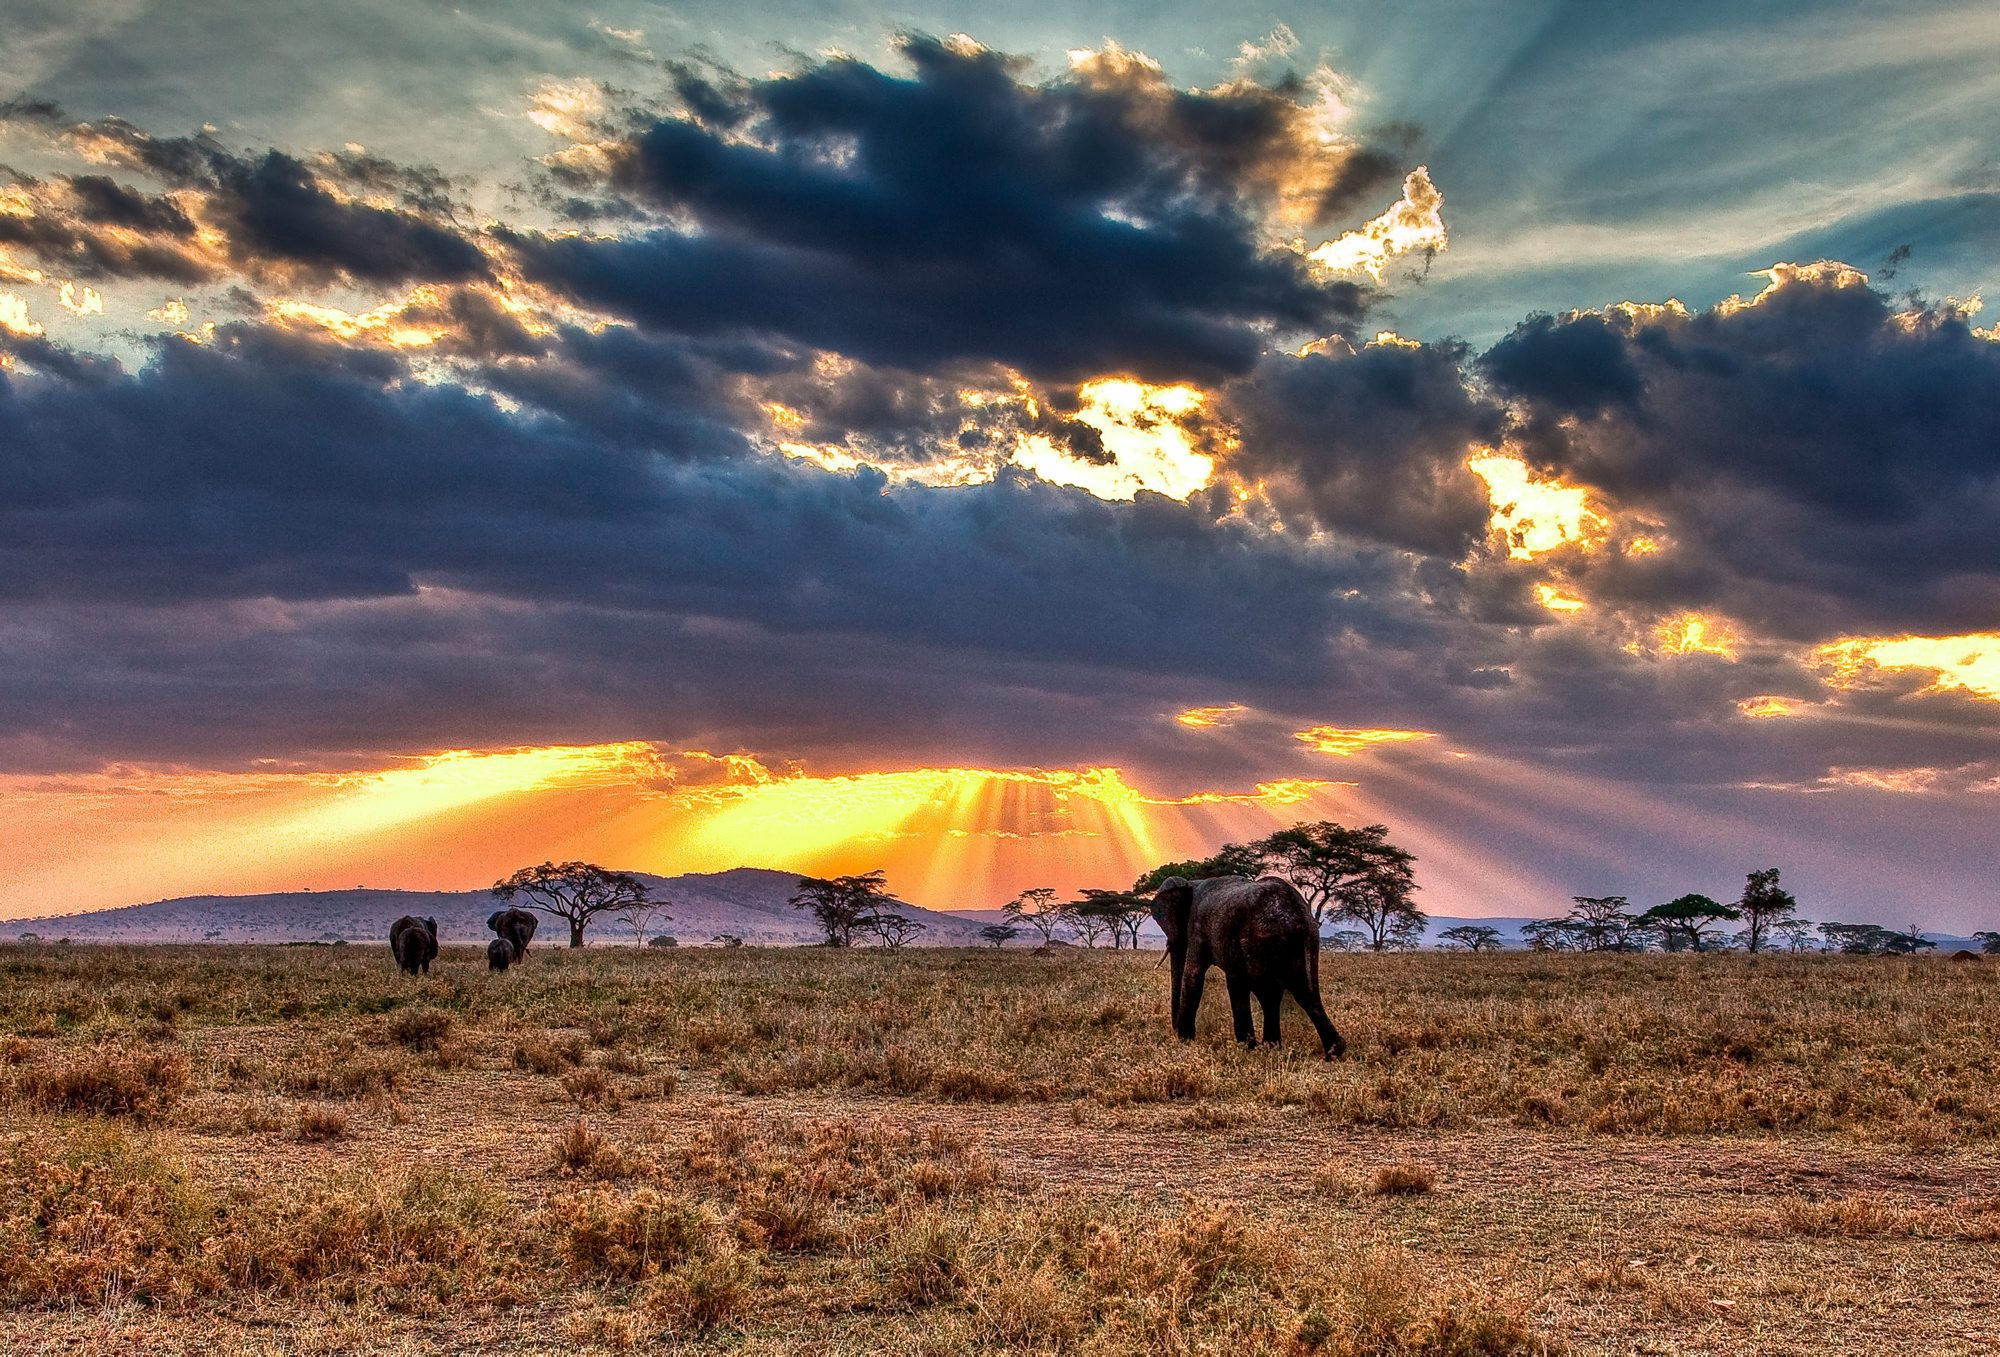 Elephant in the African bush with sun in the clouds